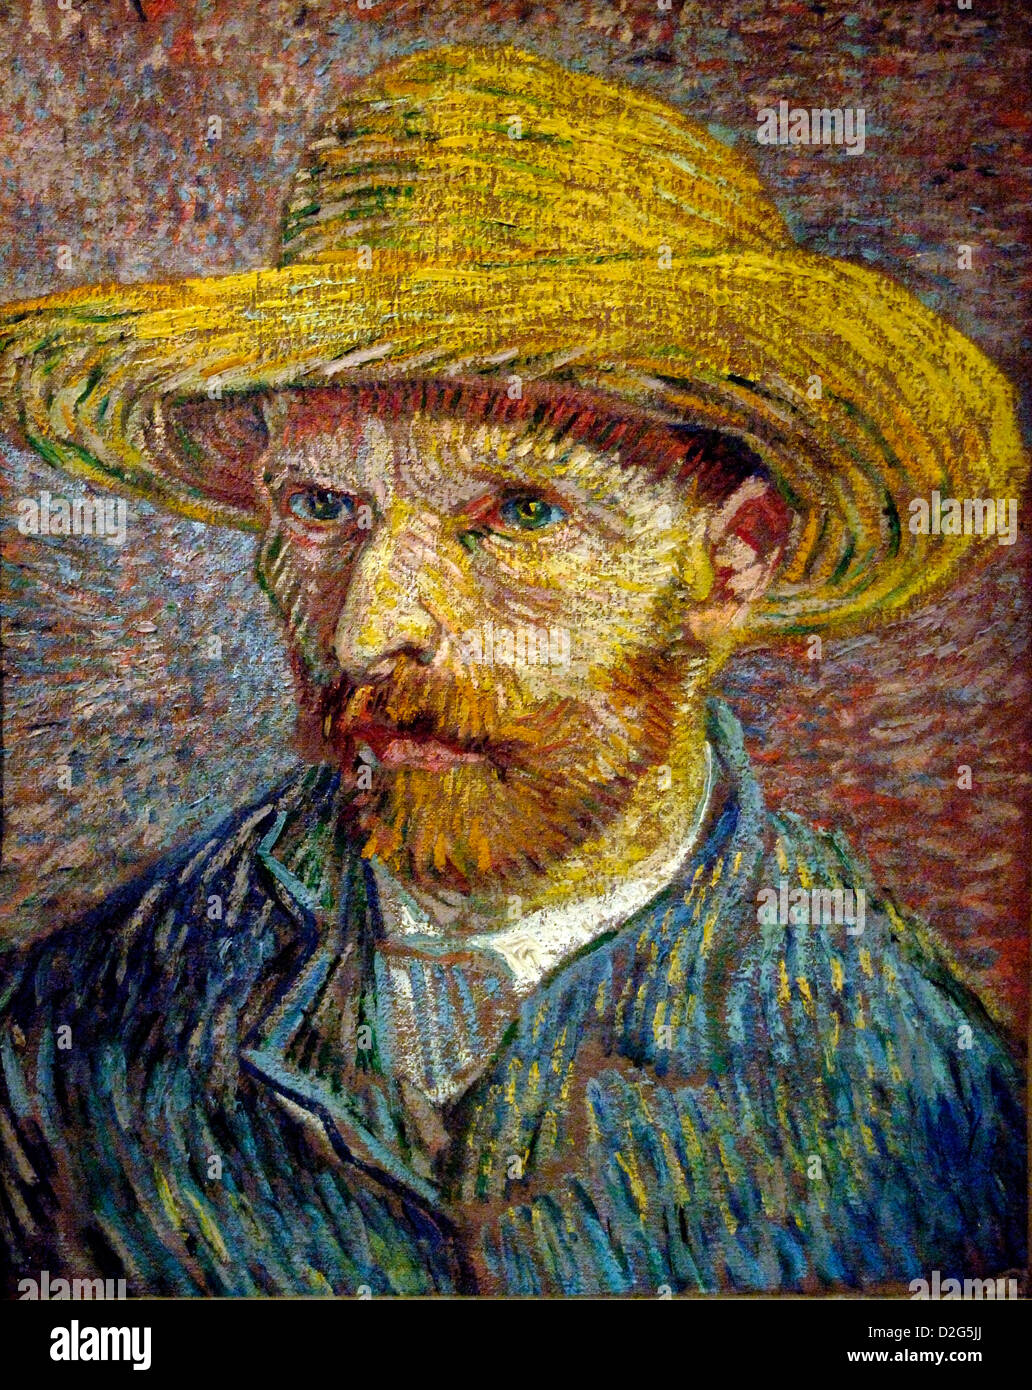 Vincent Van Gogh 'Self-Portrait with a Straw Hat' 1887 - Stock Image